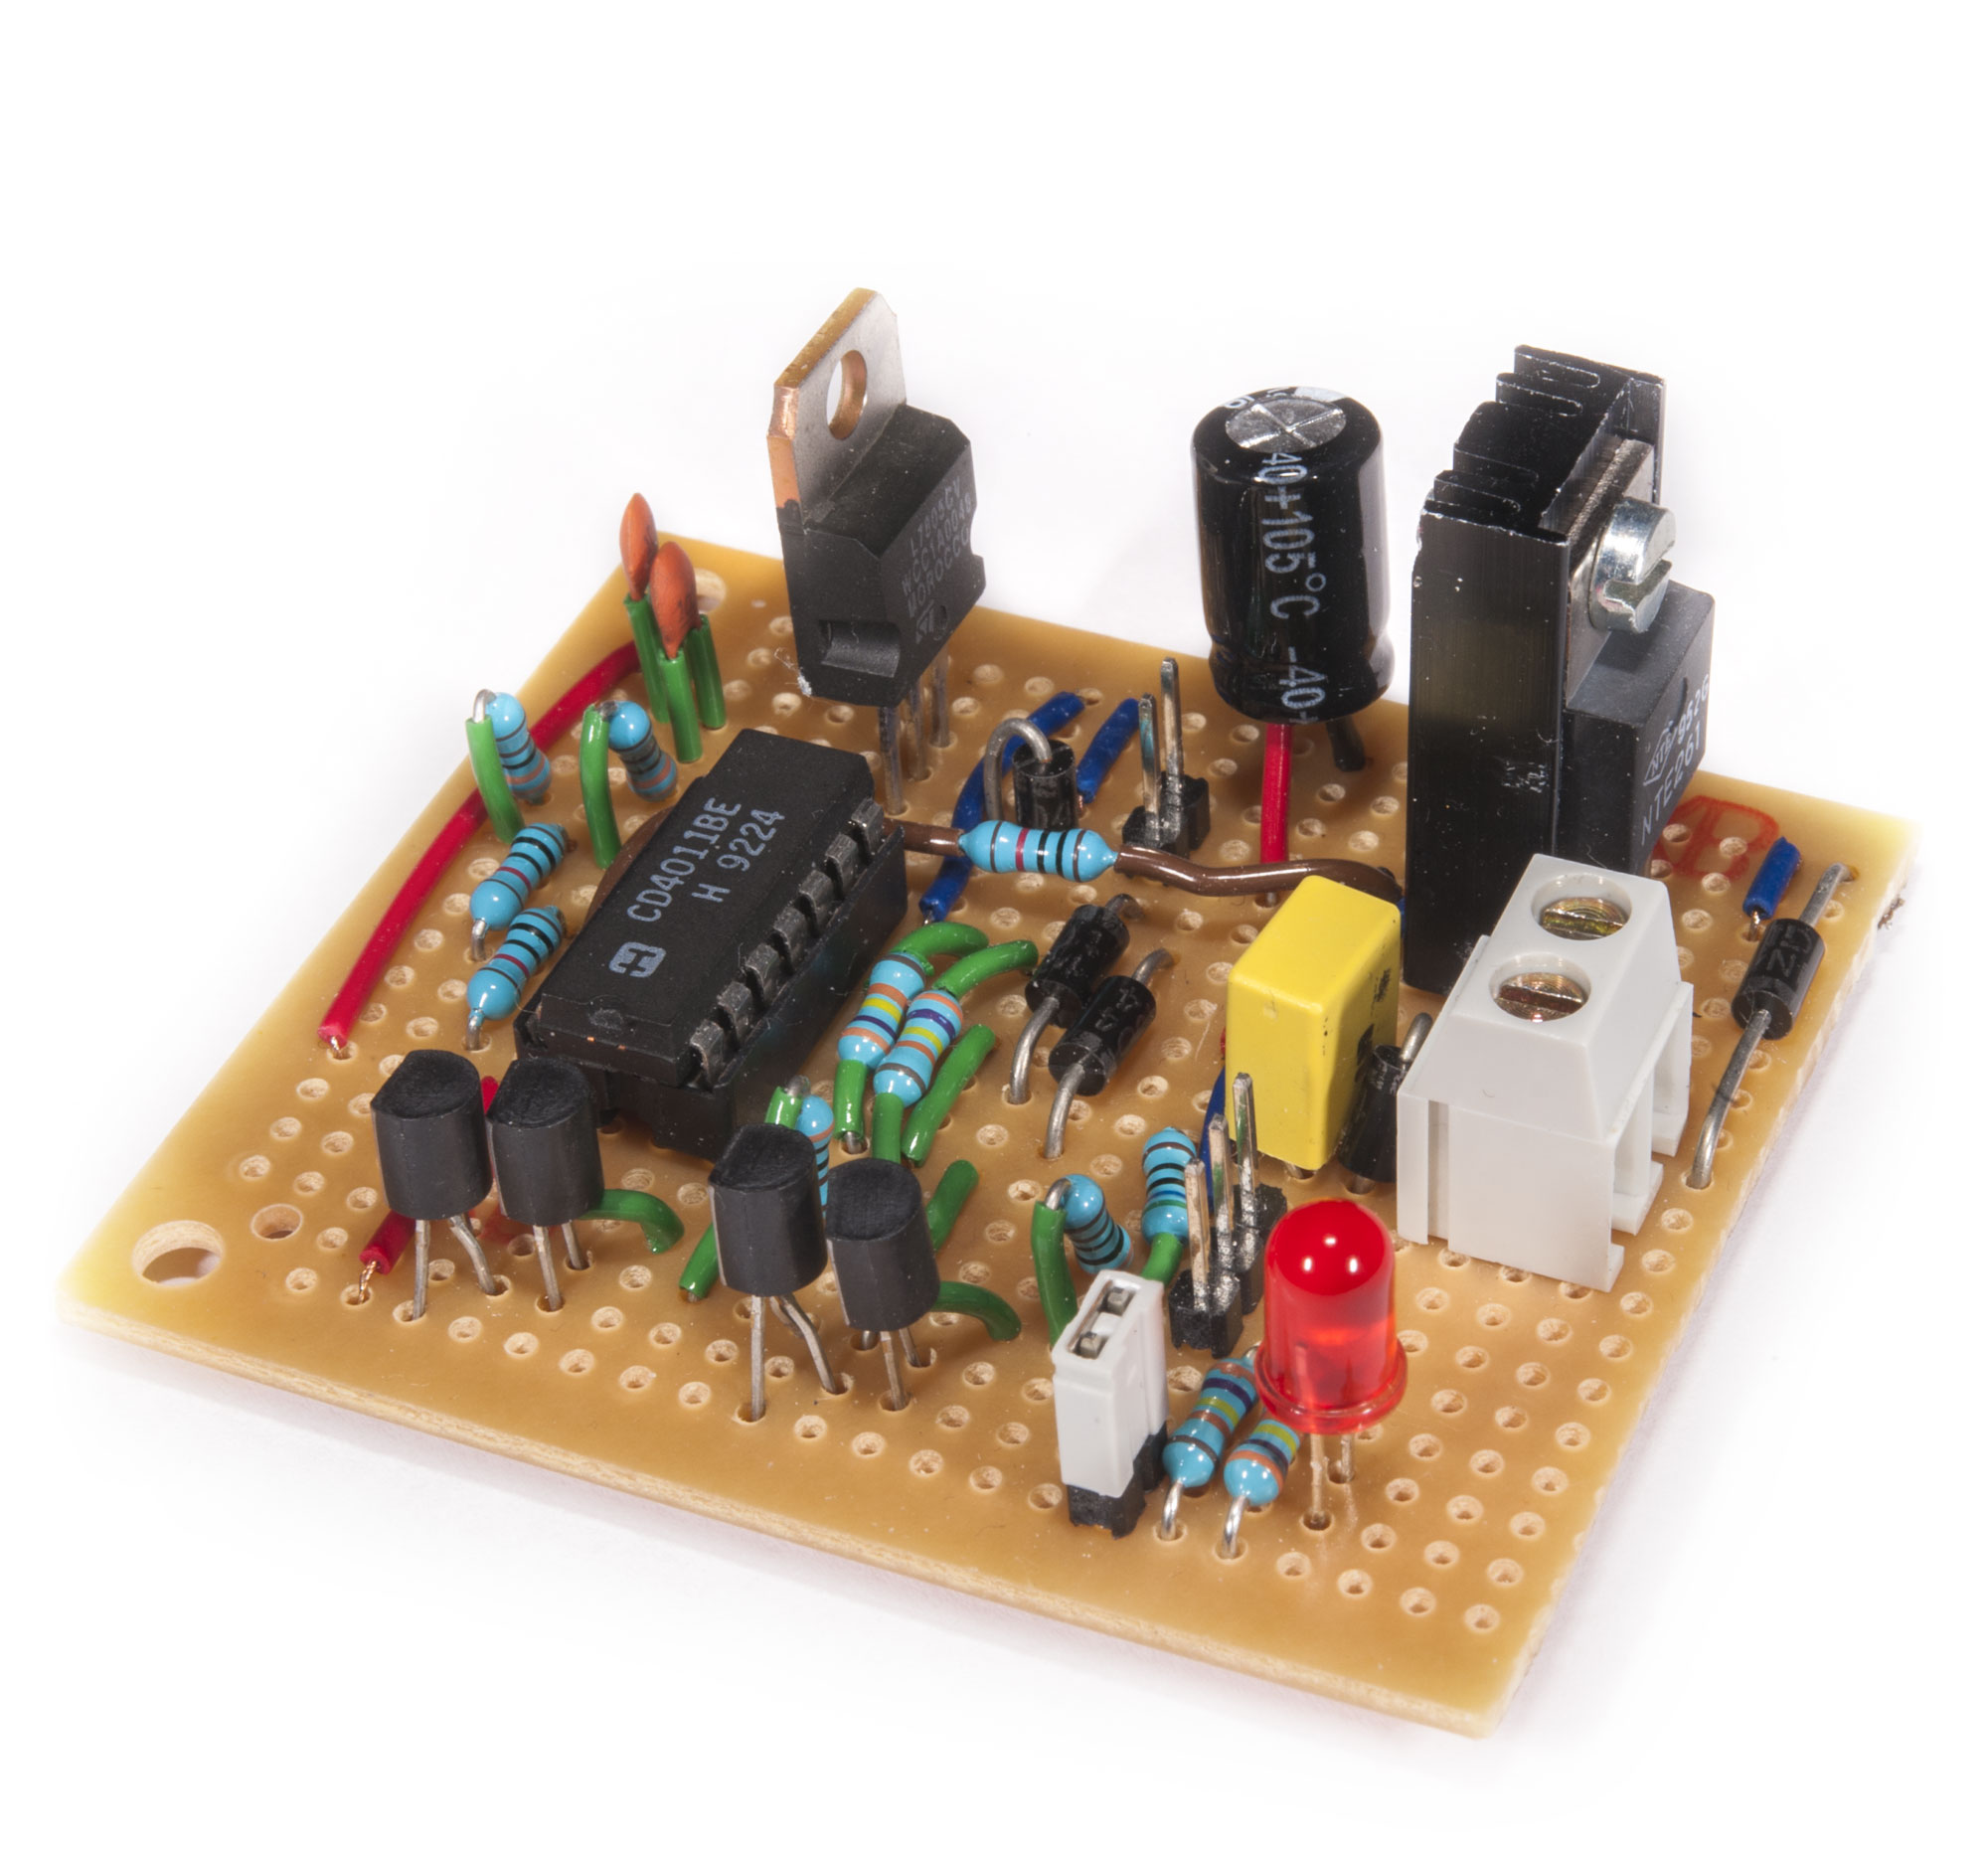 Watering Pump Controller Espen Andersens Site Pin Circuit Board Capacitors Electronics Operational Amplifiers On Using A Stripboard Is Viable Option If You Dont Want To Make Pcb Here The Made Even Smaller Than With Original